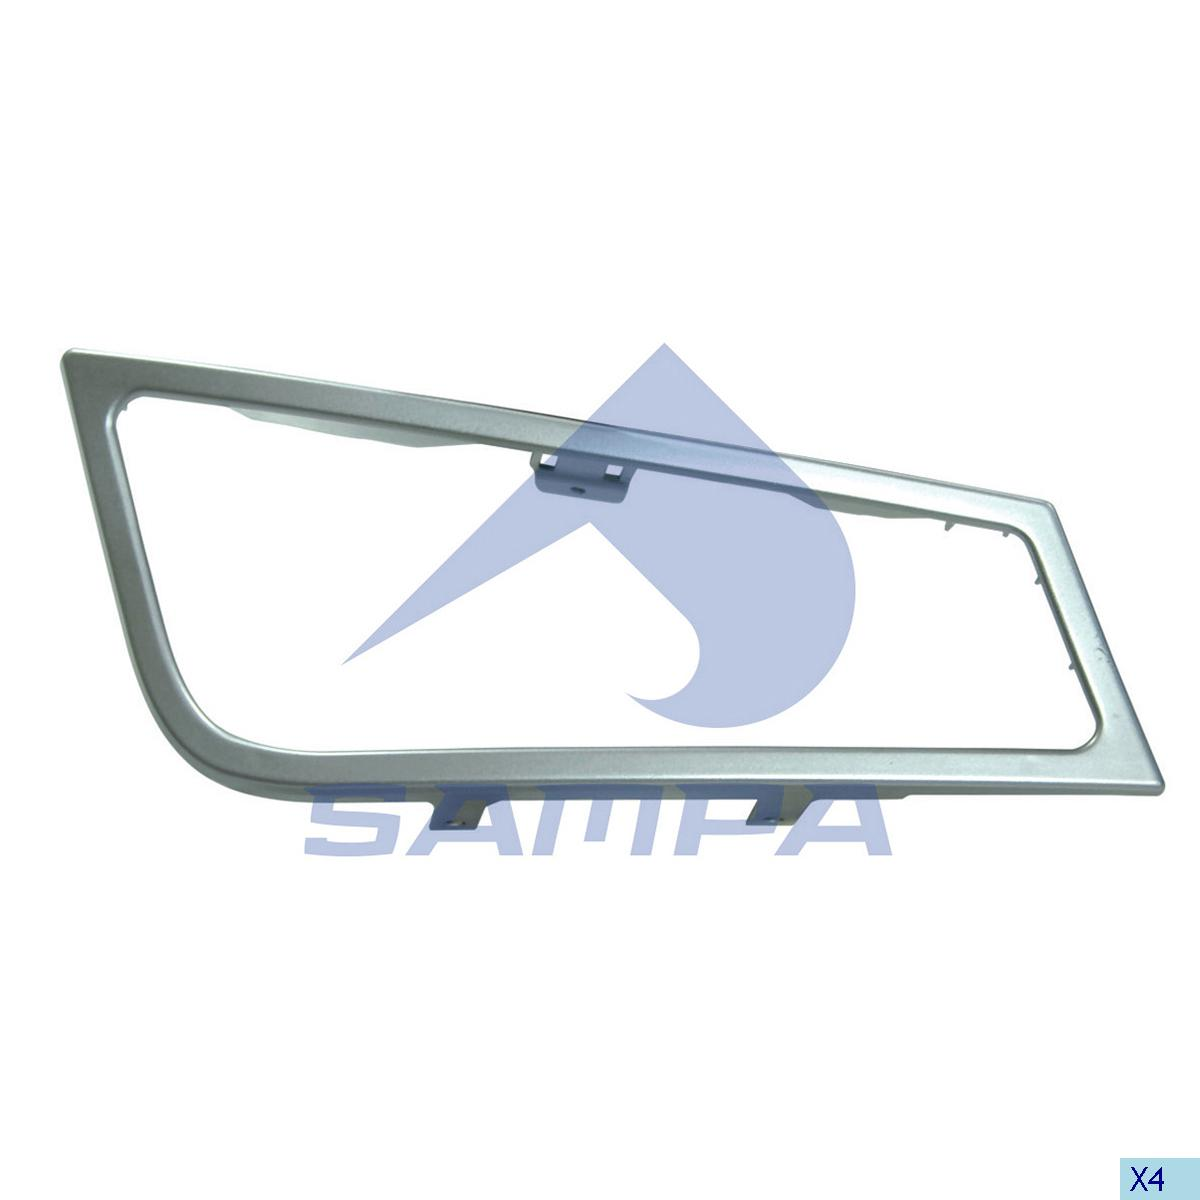 Frame, Fog Lamp, Volvo, Electric System